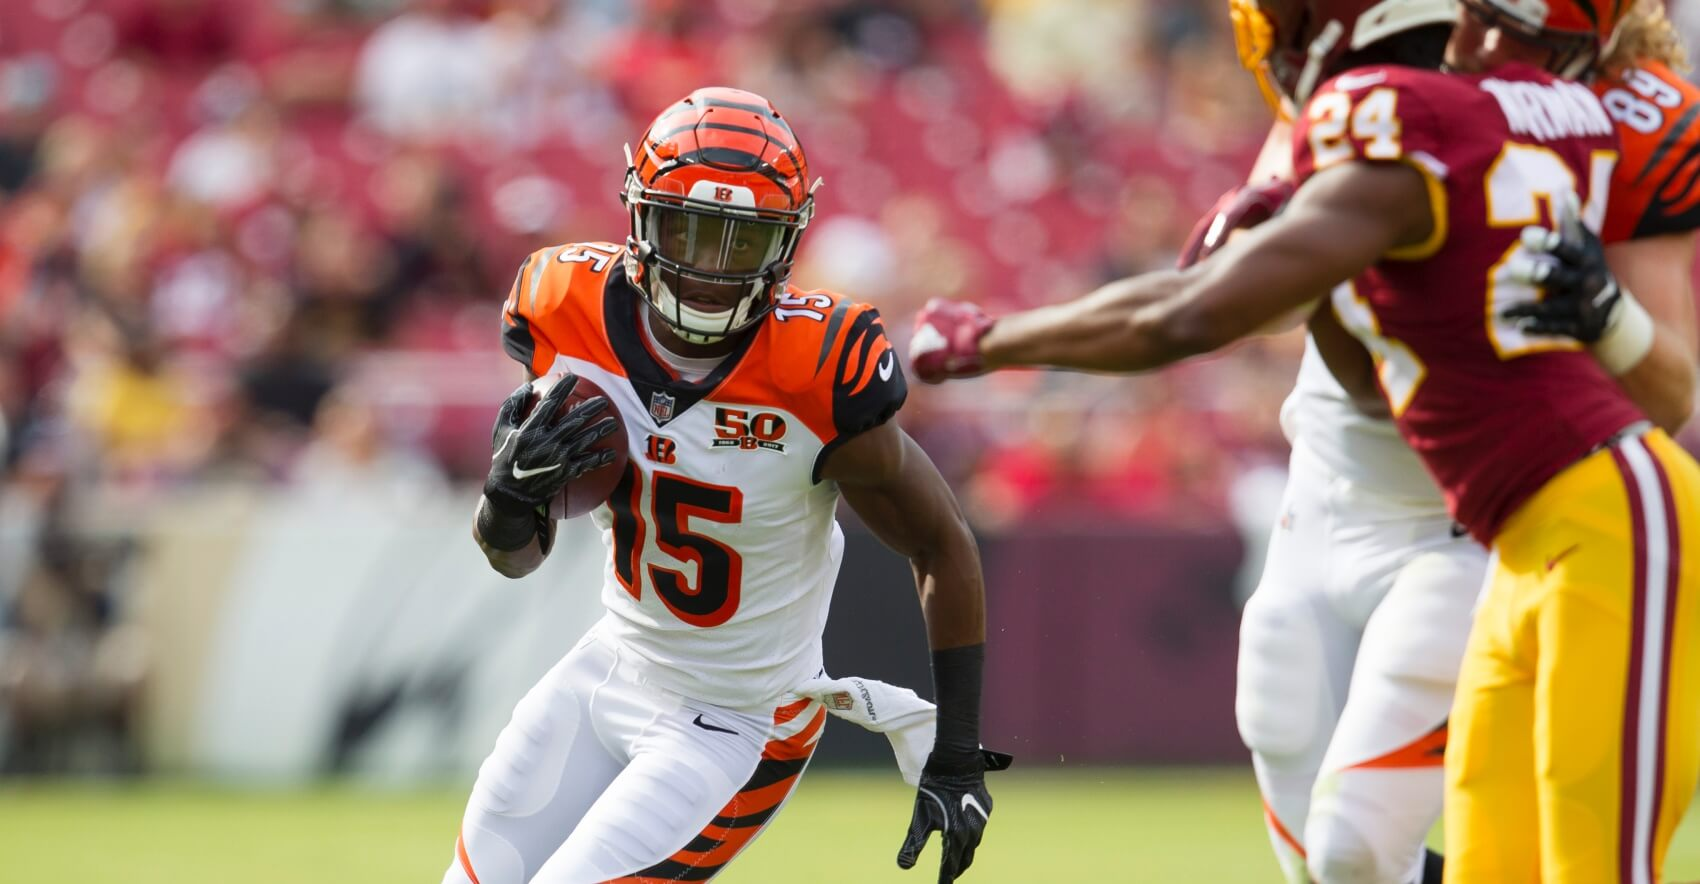 Fantasy Football: 5 Deep Sleepers For 2018